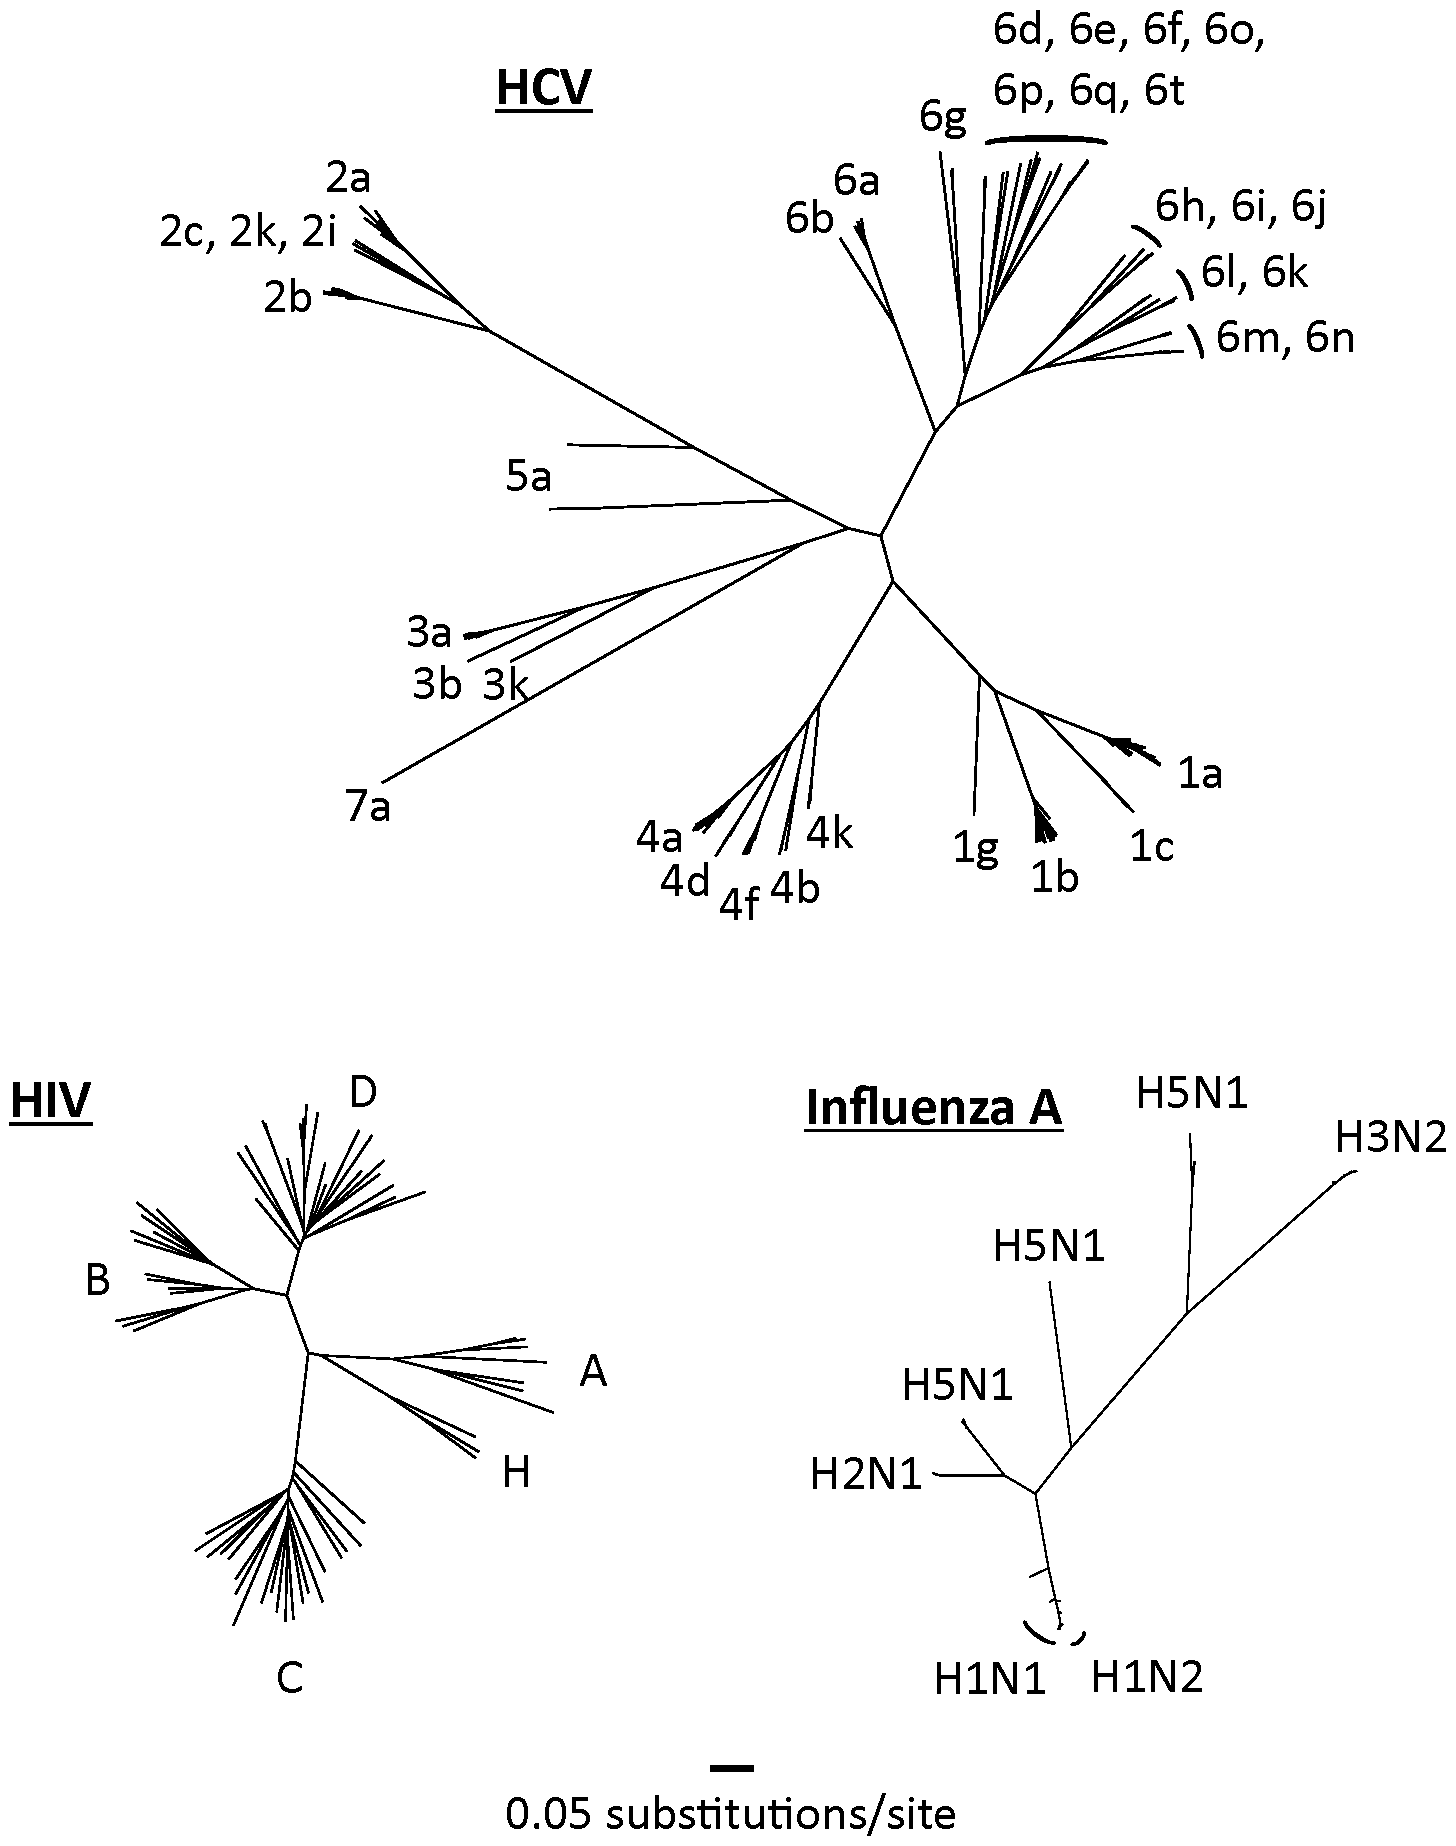 Complete genome trees of the hepatitis C virus, HIV-1 (M-group), and the hemagglutinin region of influenza A.